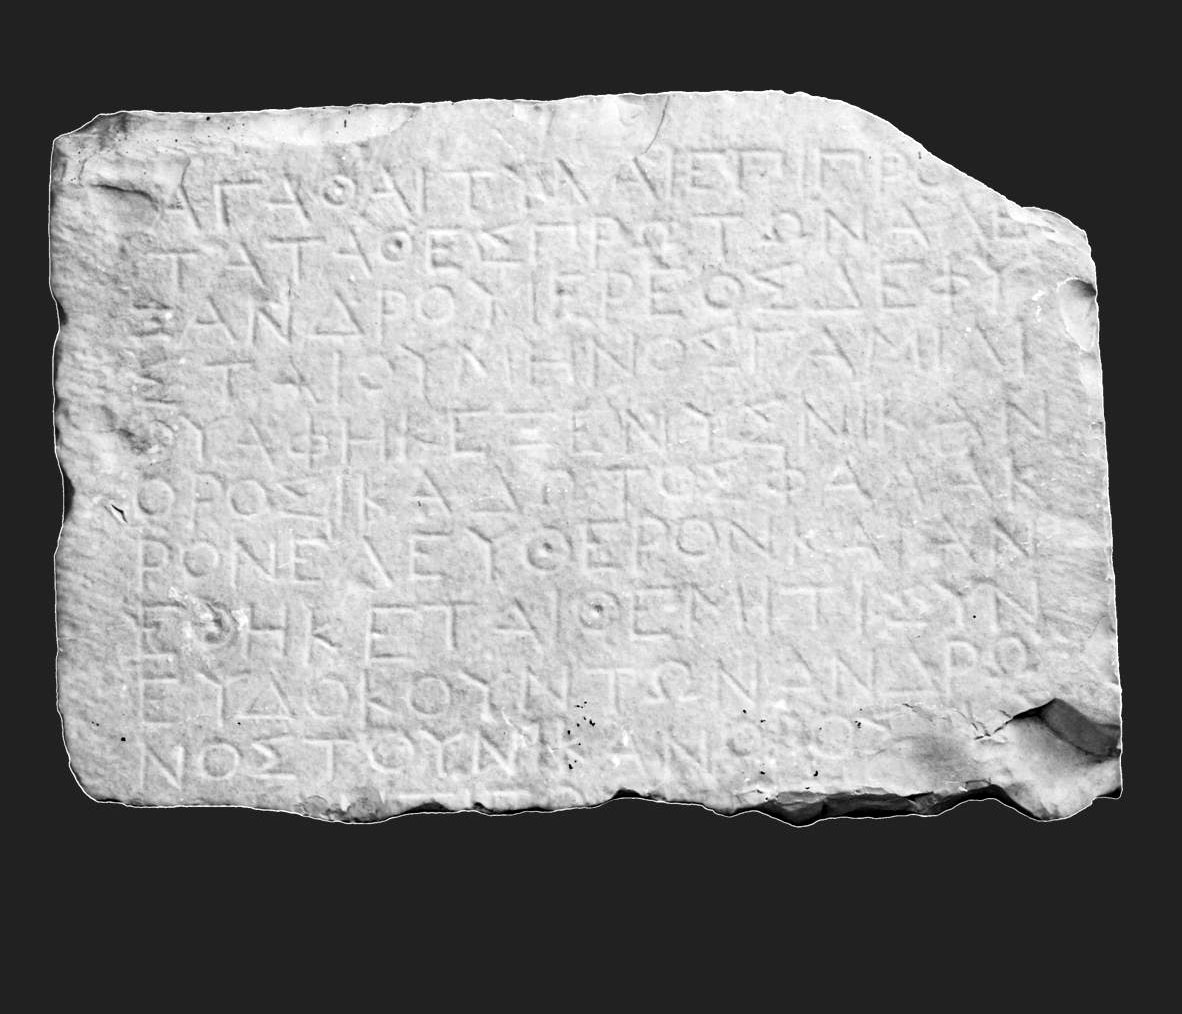 Stone stele with the recorded manumission of slave Falakros. It was found in 1960 in the area of Goumani (ancient Gitana). Archaeological Museum of Igoumenitsa.